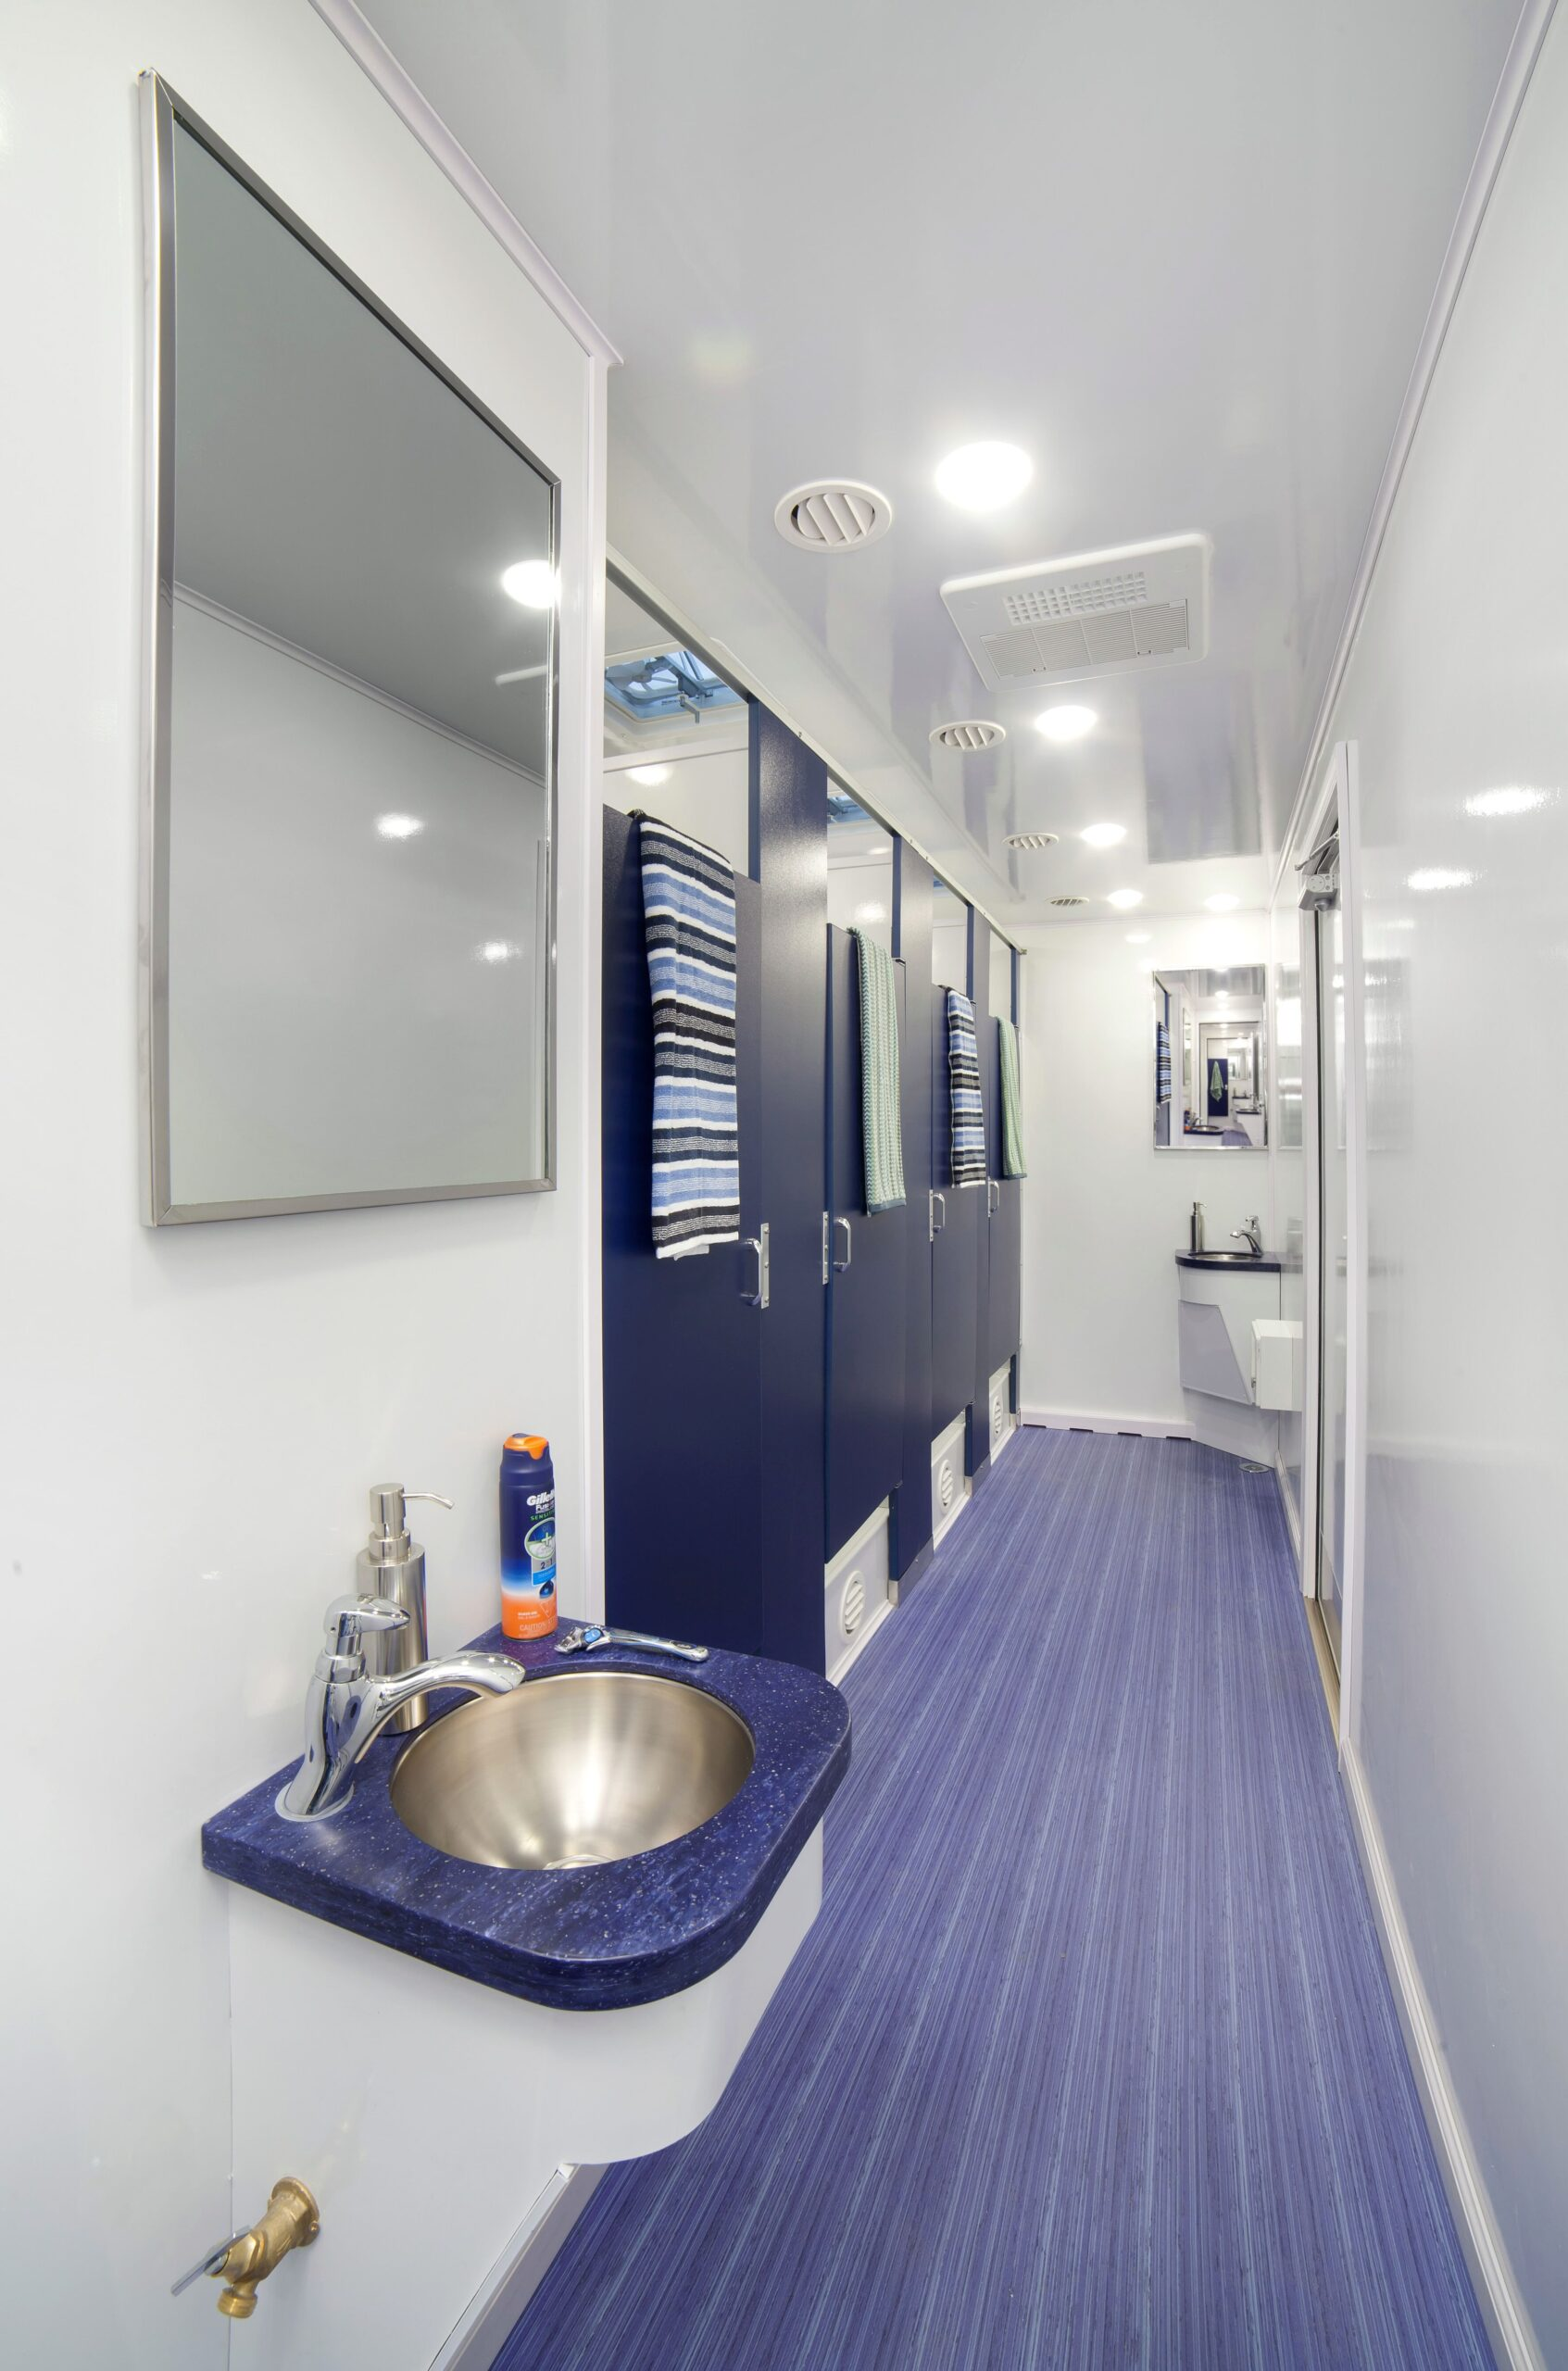 Inside of a shower restroom trailer with a sink and four blue doors to shower booths